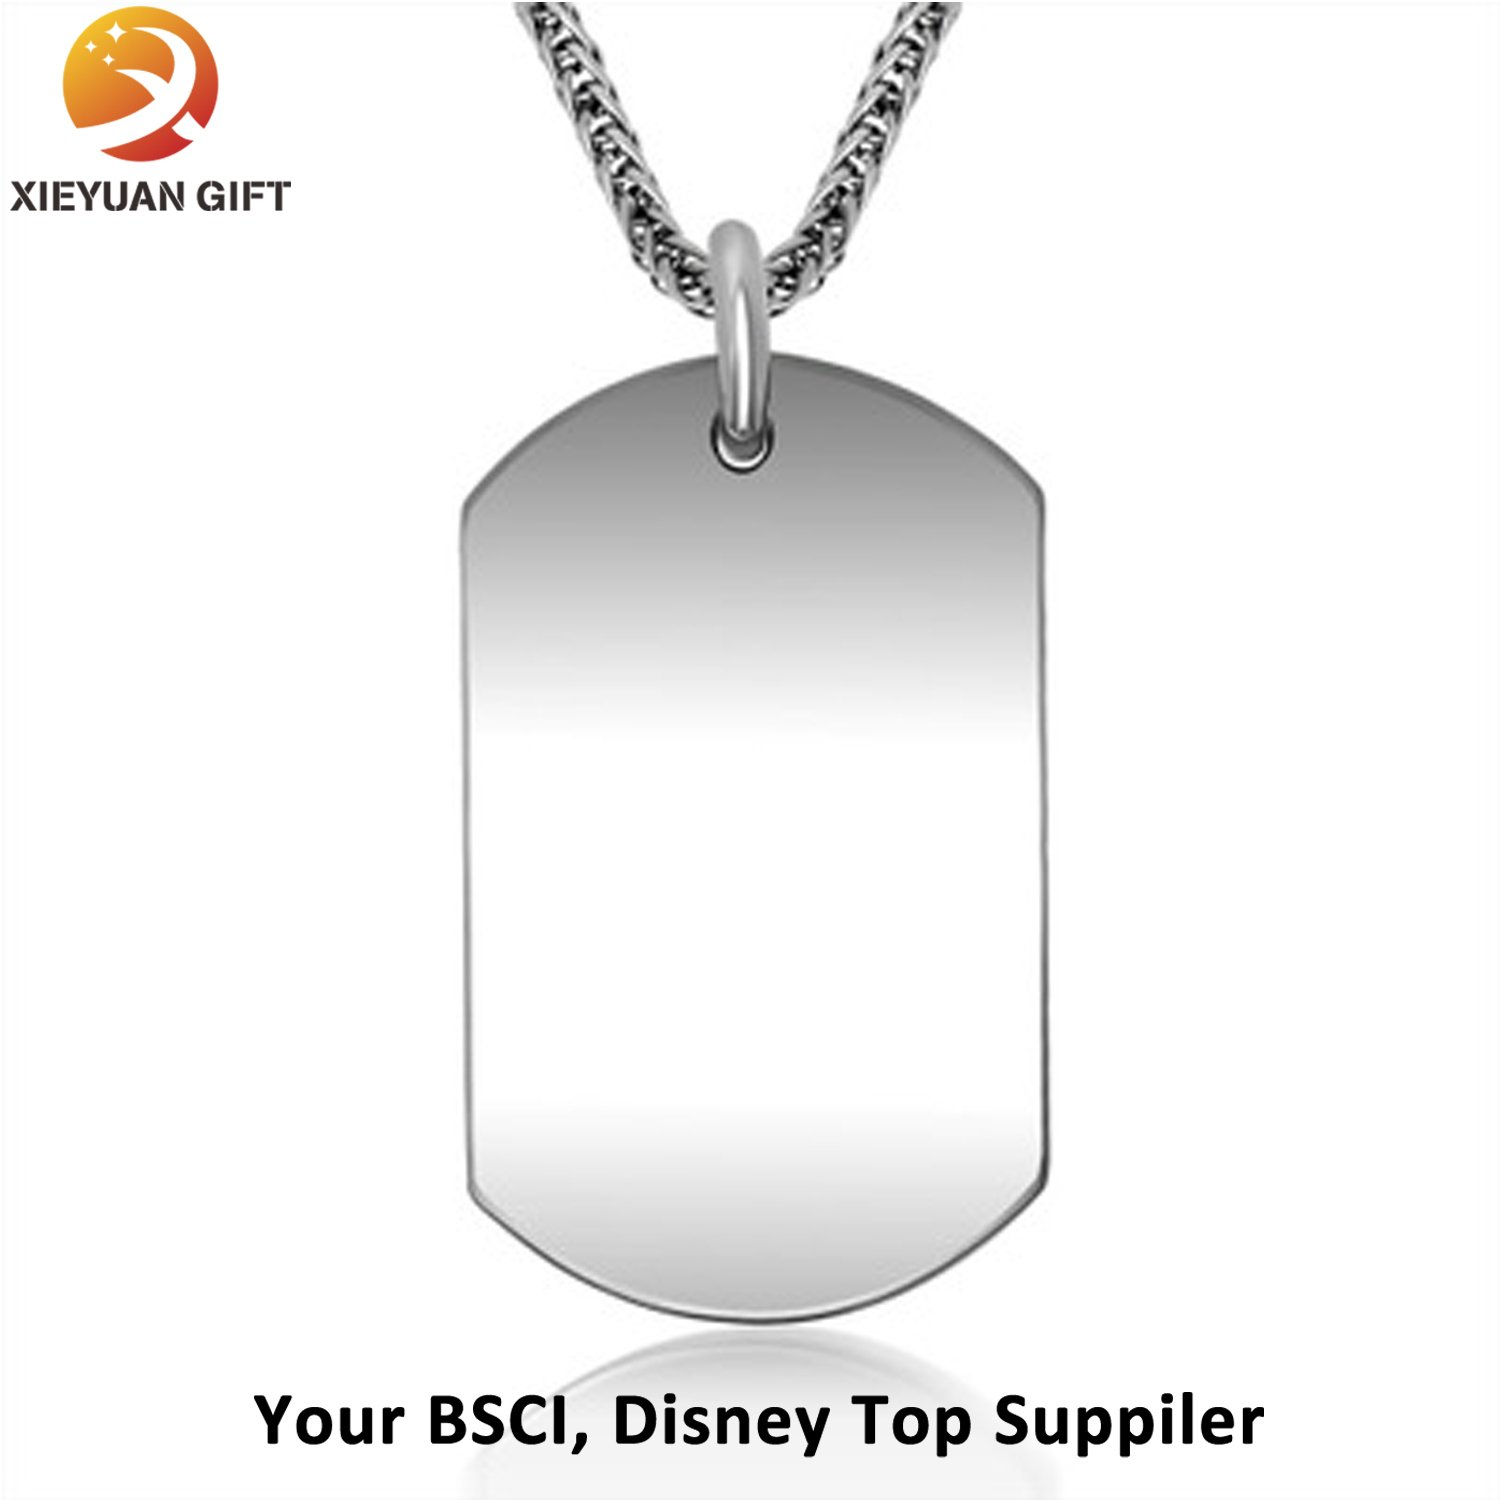 Custom Metal and Silicone Dog Tag (xy-453)